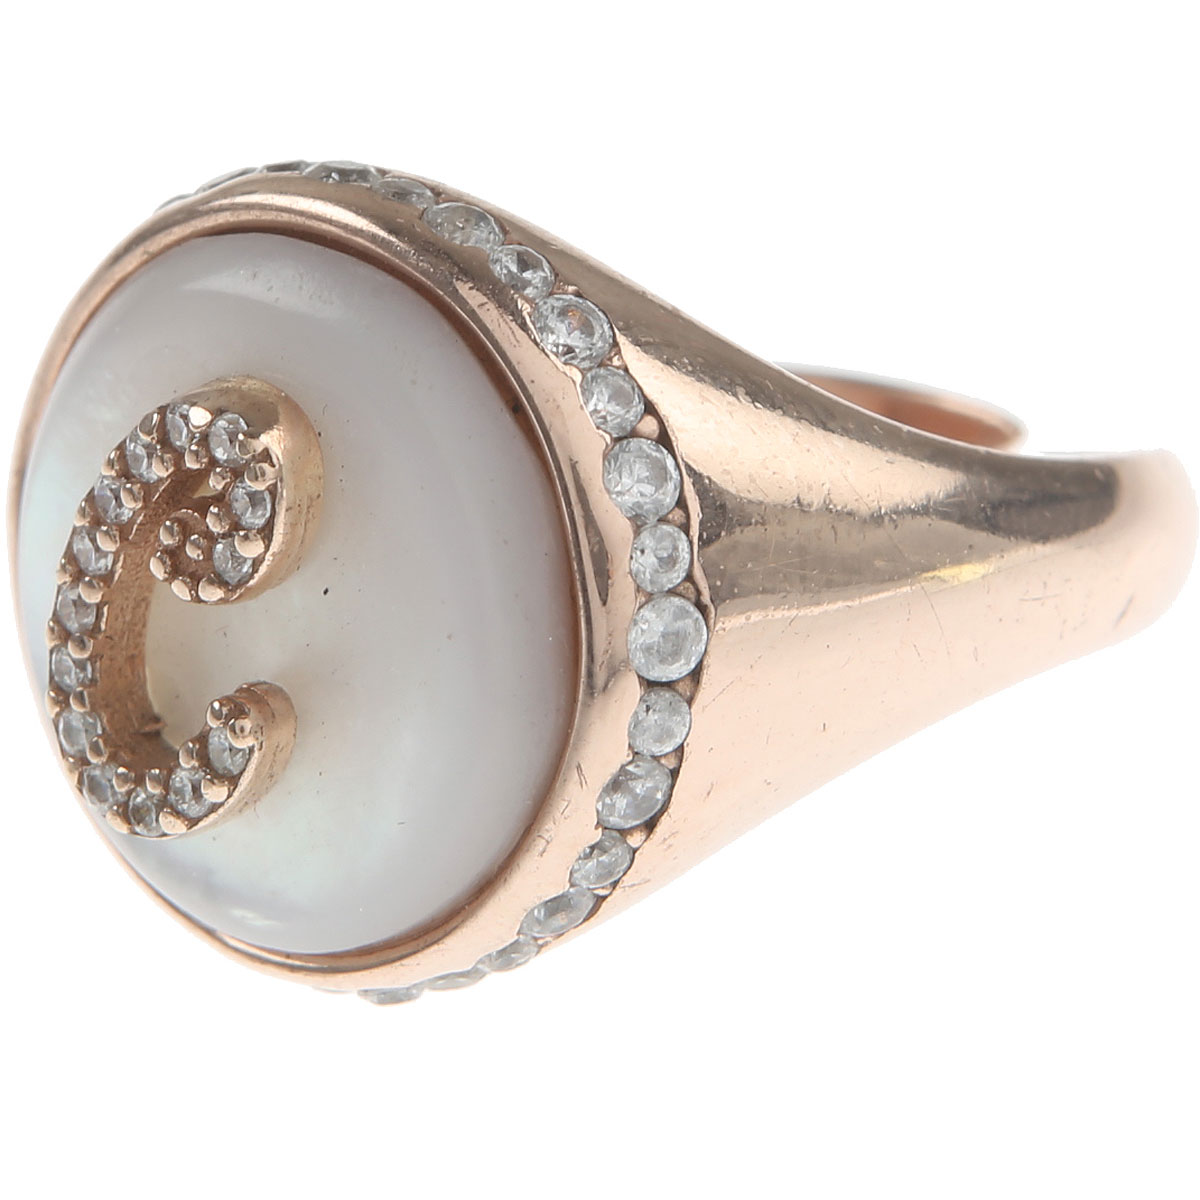 Italian Finest Jewelry Ring for Women On Sale, Rose Gold, Silver 925, 2019